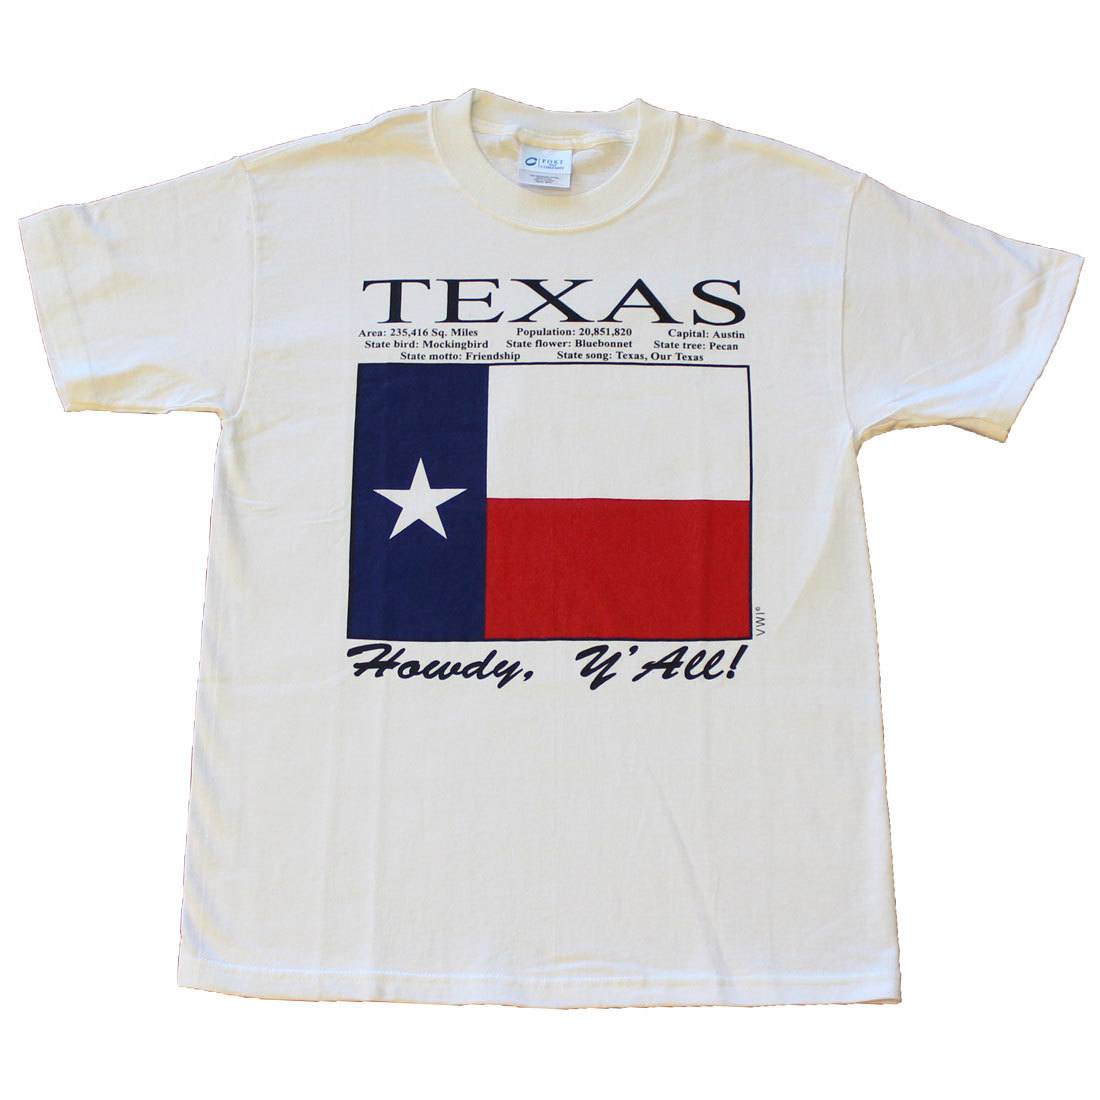 Texas State T-Shirt (S)